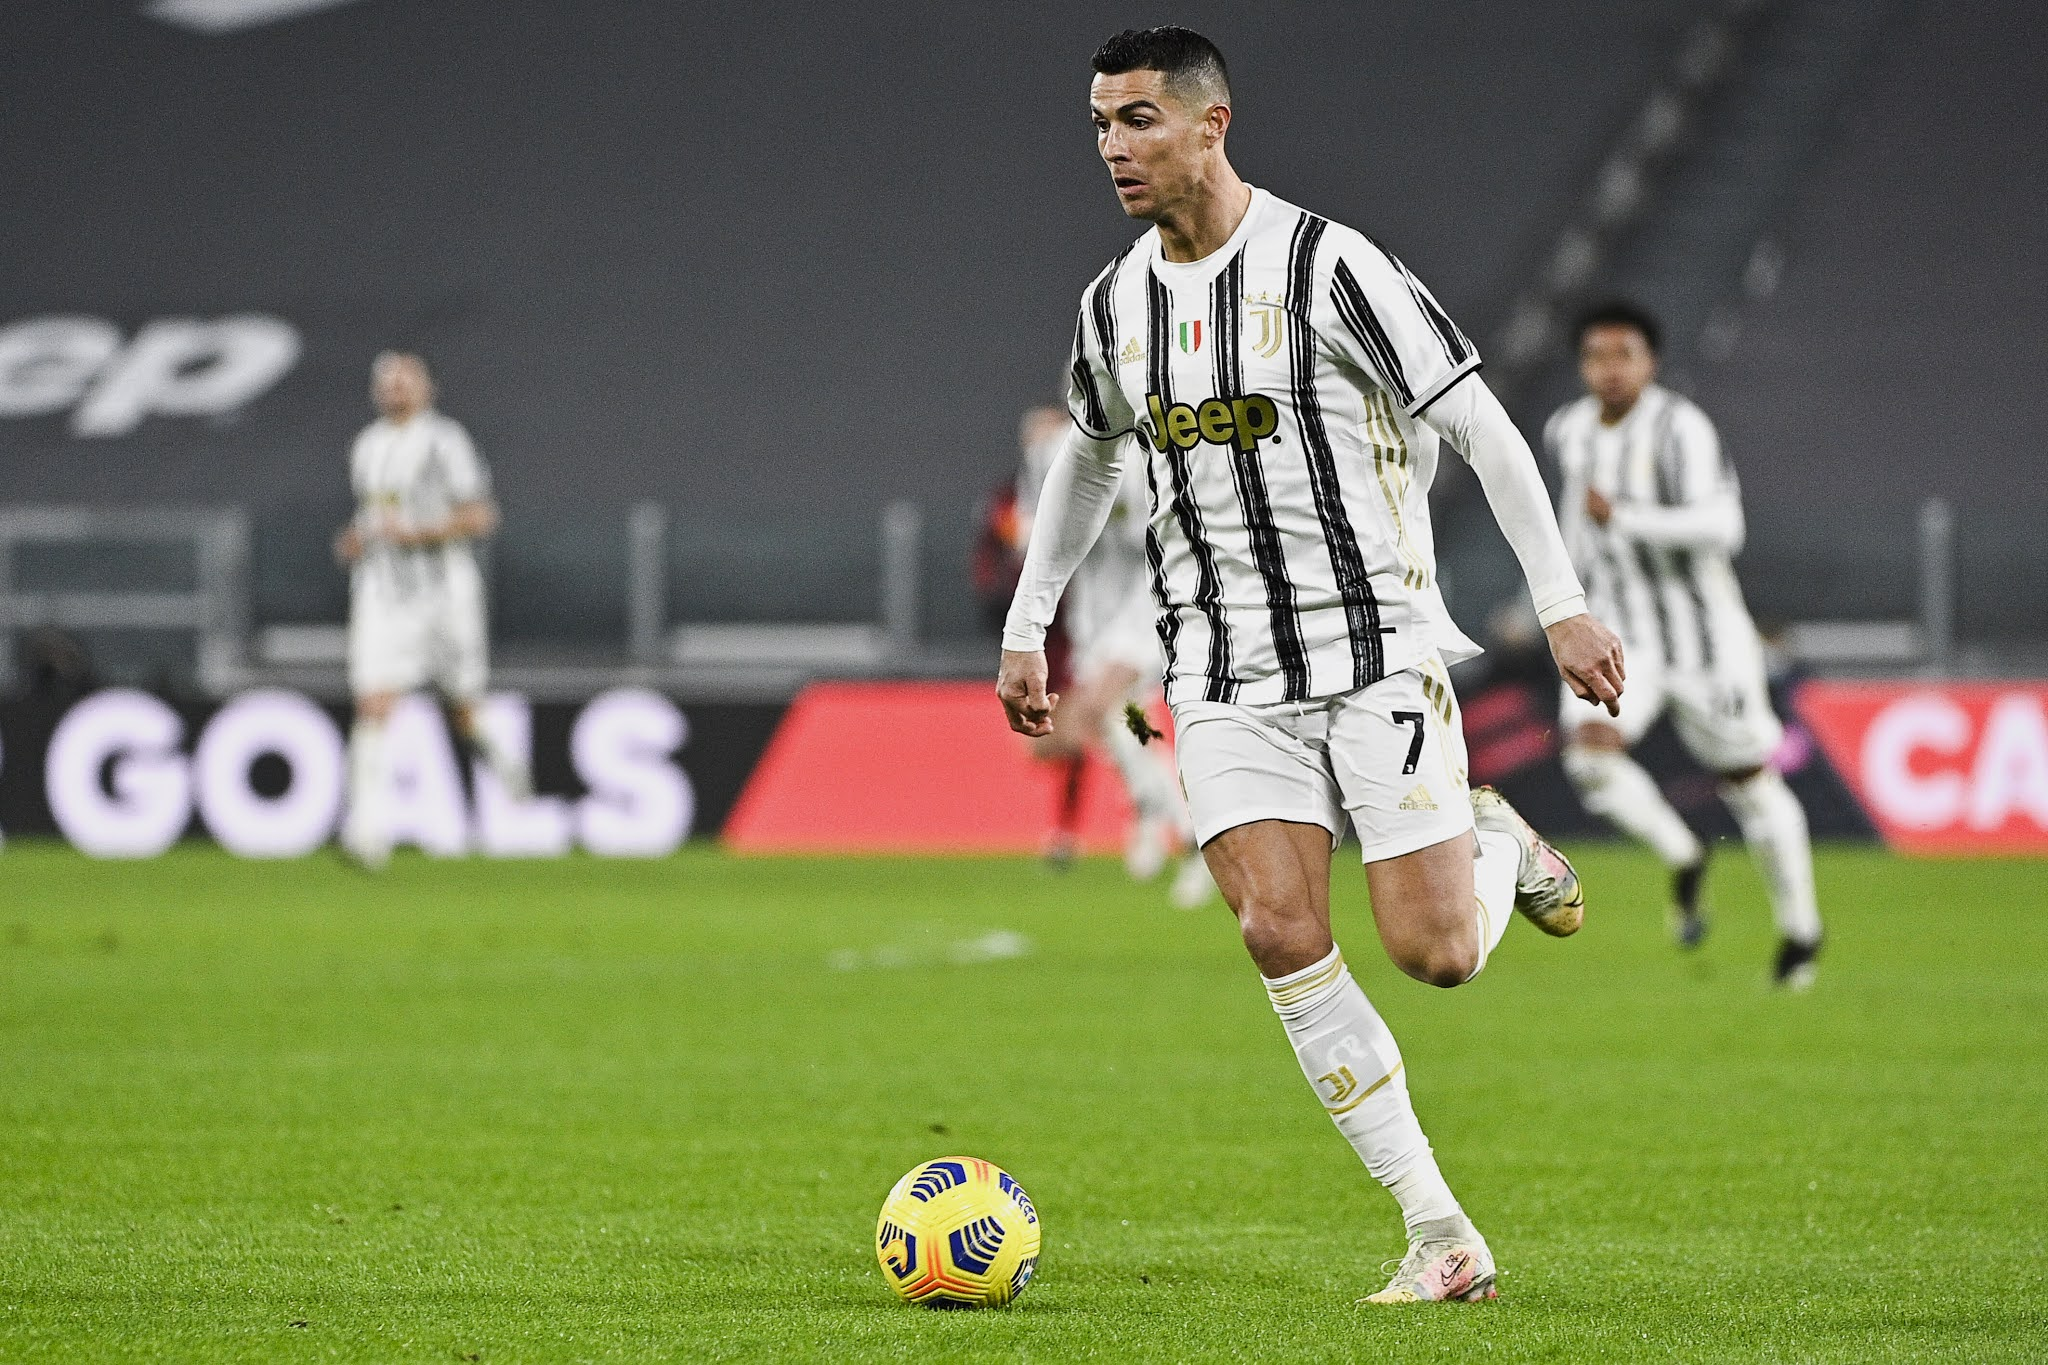 Cristiano Ronaldo's Juventus will be hoping to get back to winning ways against Spezia in midweek action